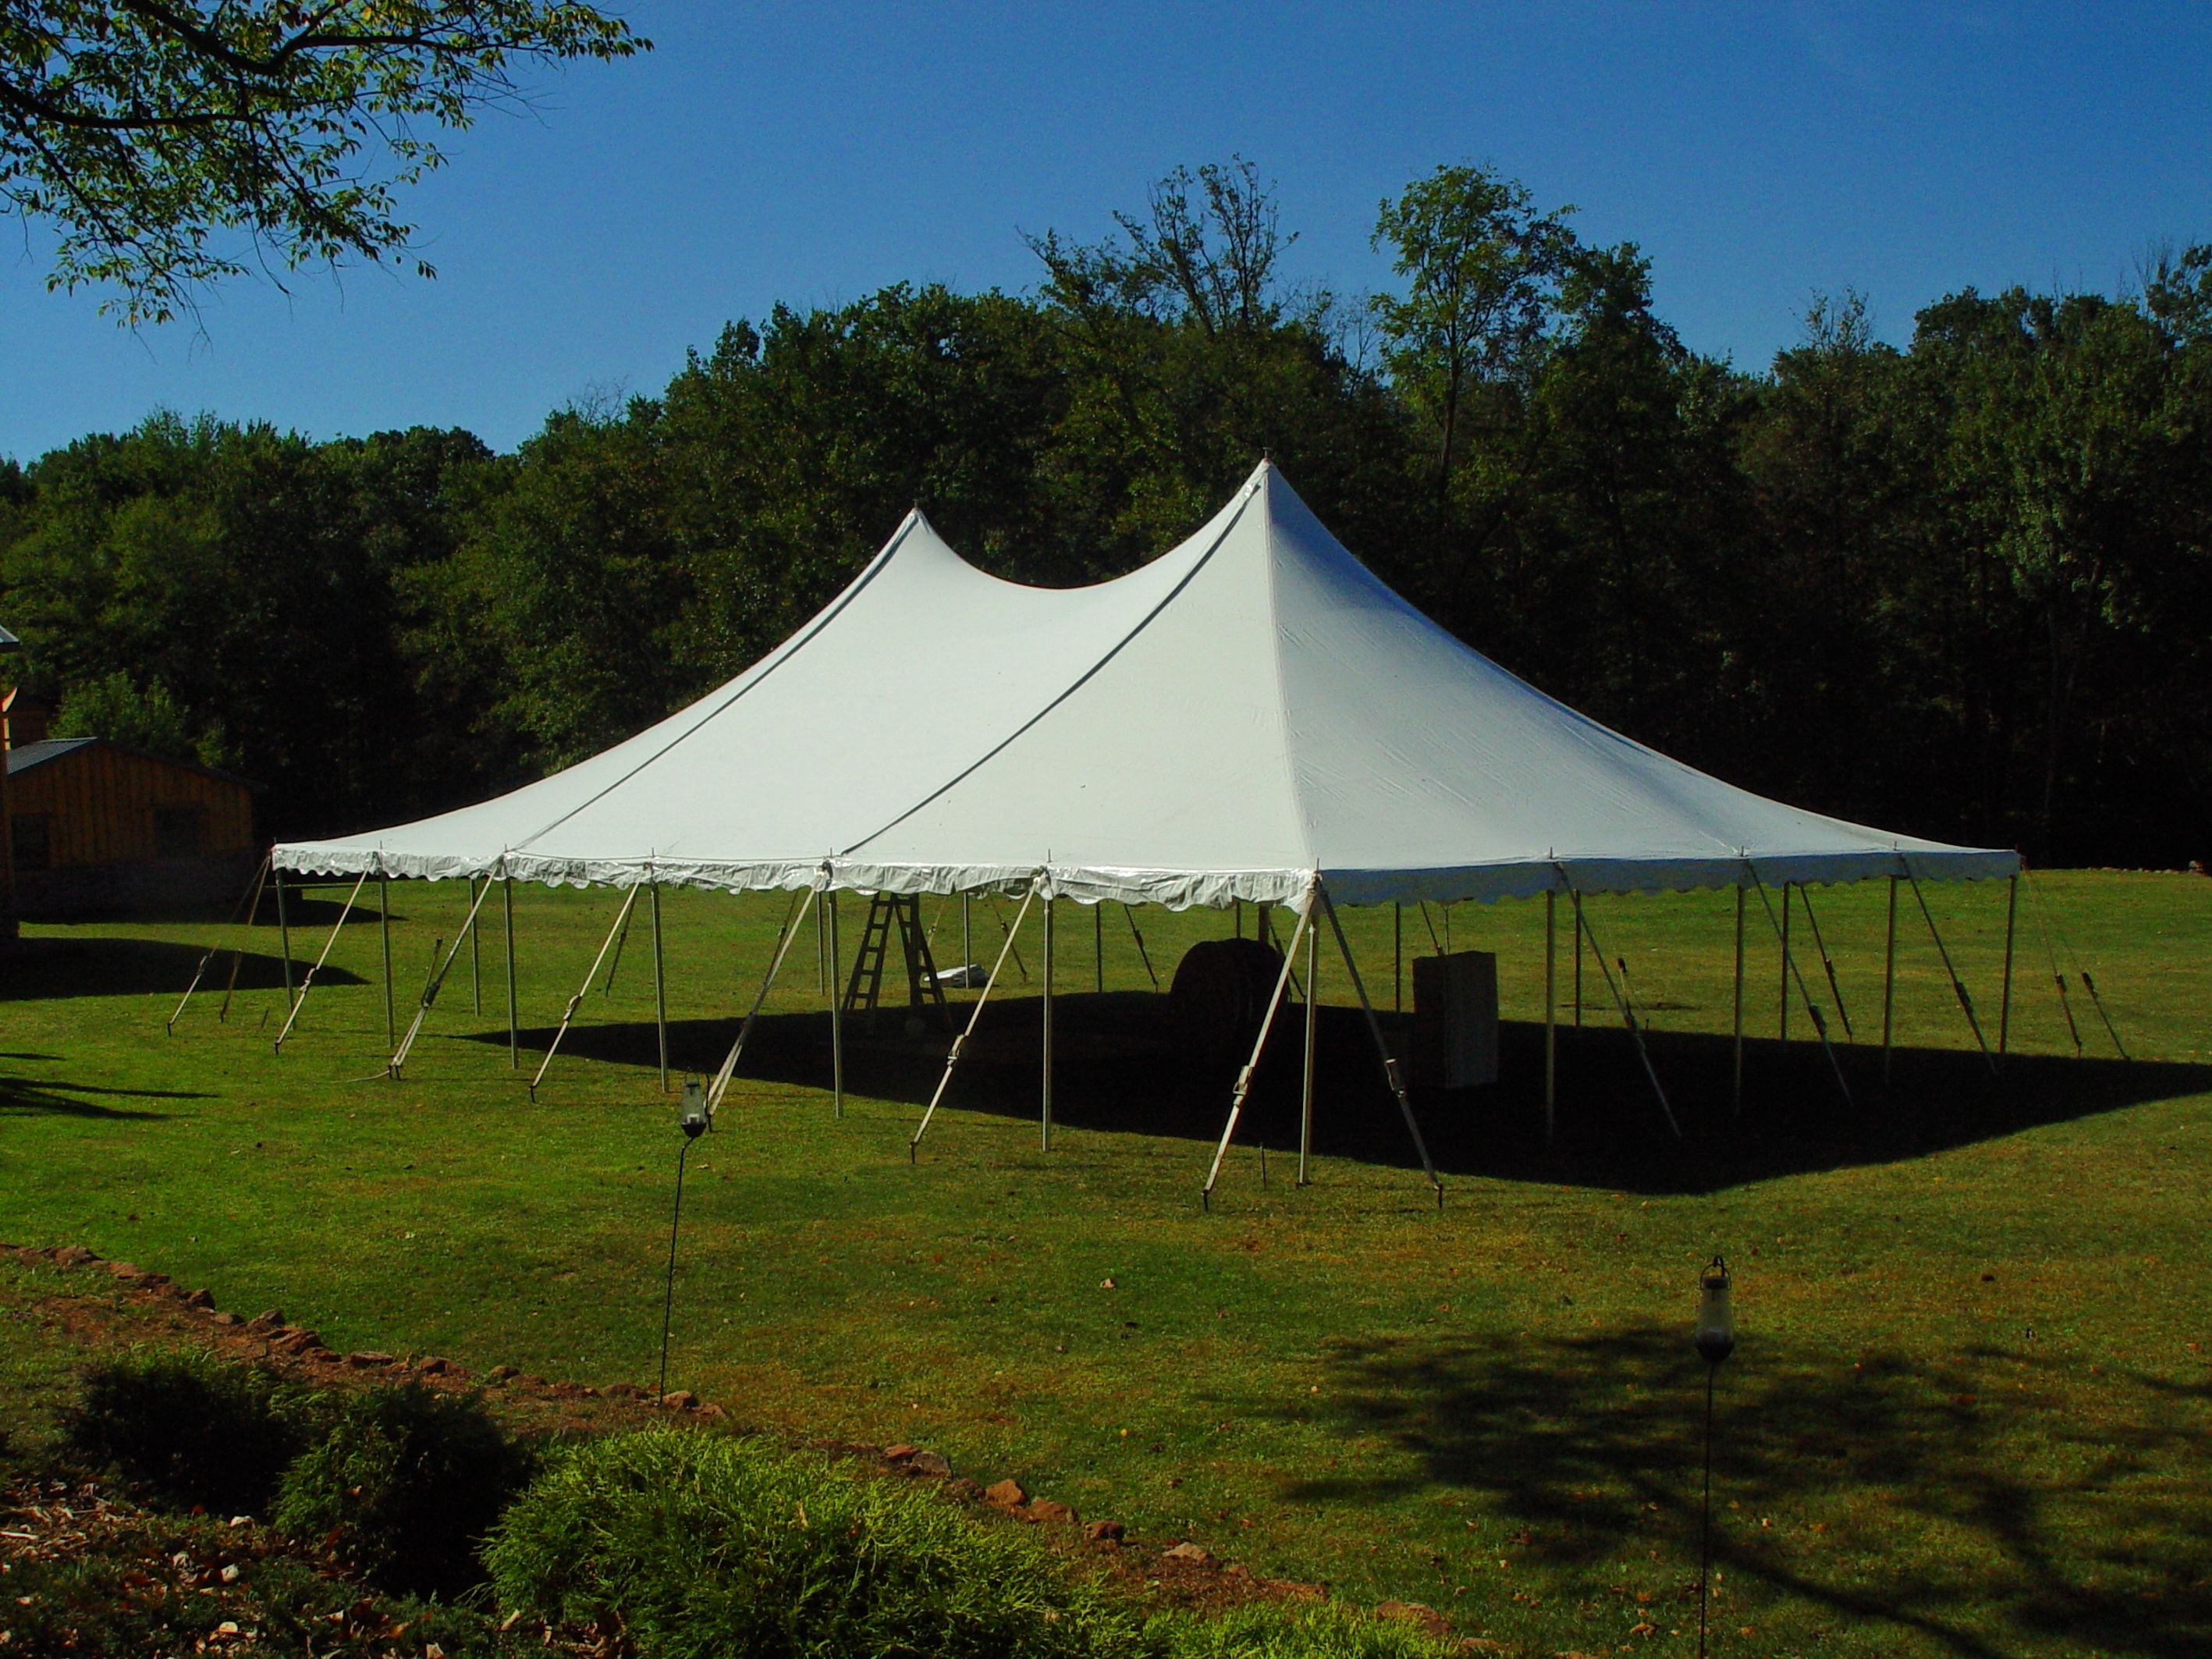 white, Tent, For, Tents, Tents for rent, Rent, 40x60